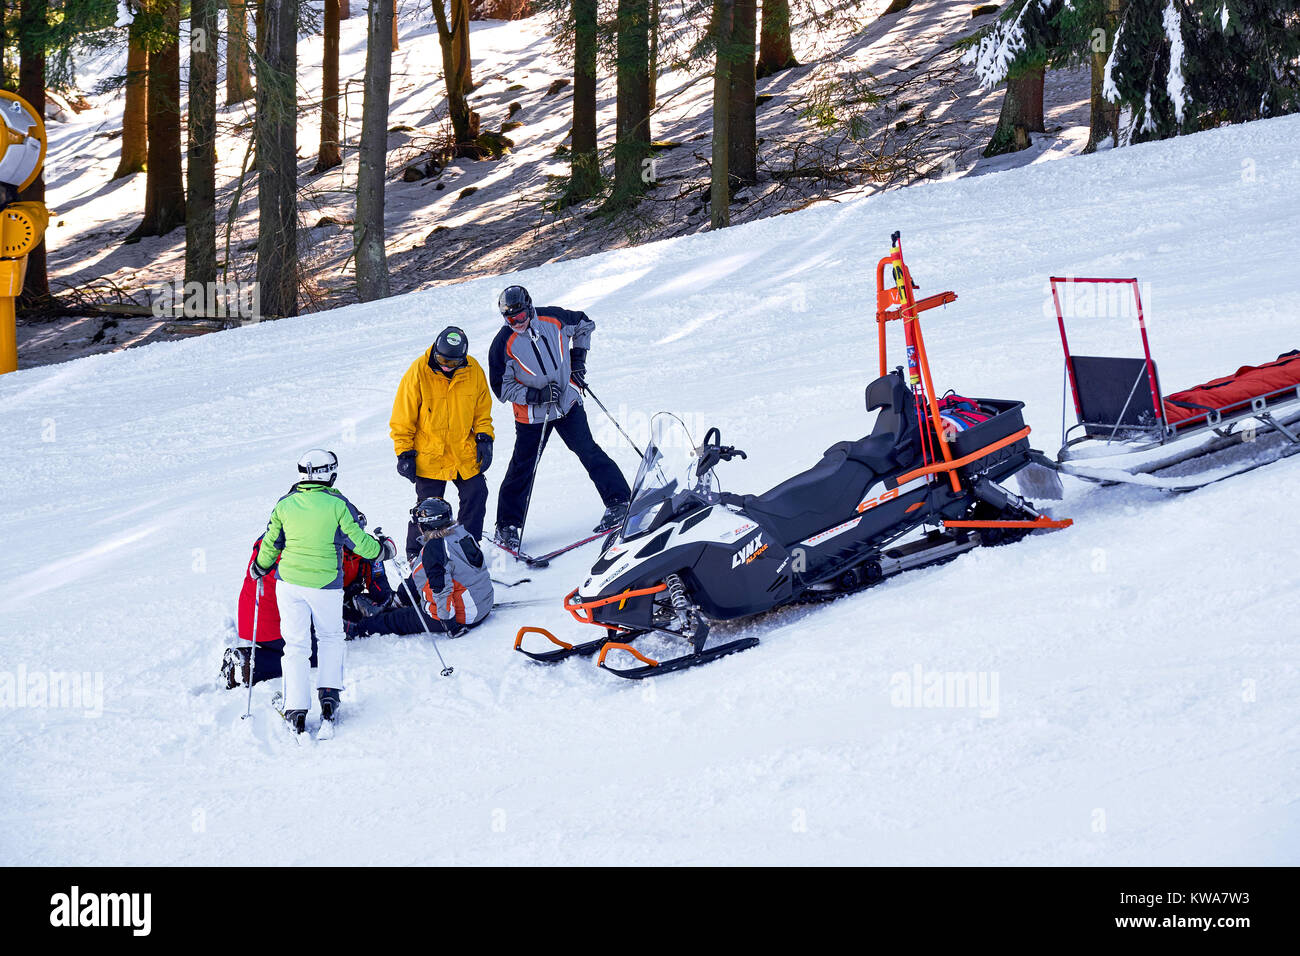 WINTERBERG, GERMANY - FEBRUARY 15, 2017: Rescue snowmobile at a accident scene on a ski piste - Stock Image